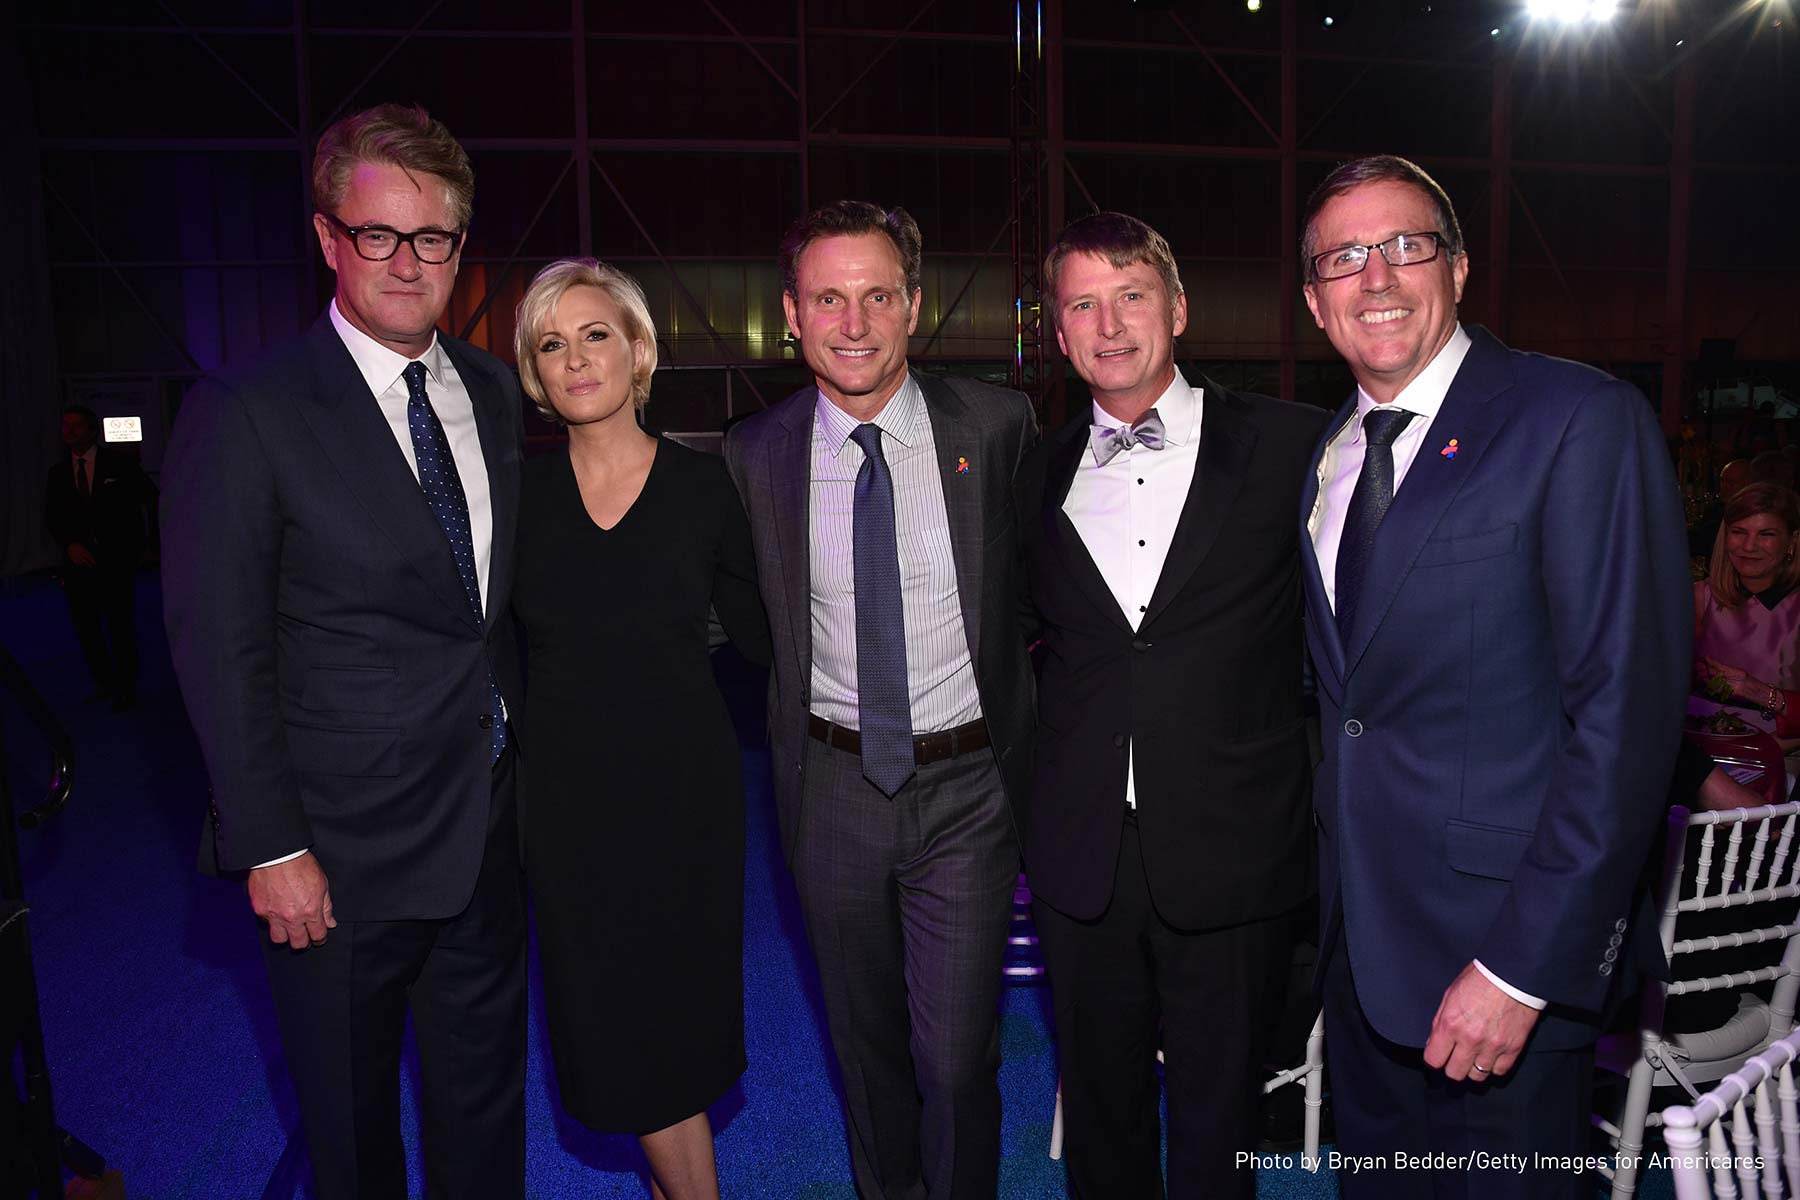 Joe Scarborough, Mika Brzezinski, Tony Goldwyn, Jonathan Bush Jr. and Americares President and CEO Michael J. Nyenhuis at the 2017 Americares Airlift Benefit.